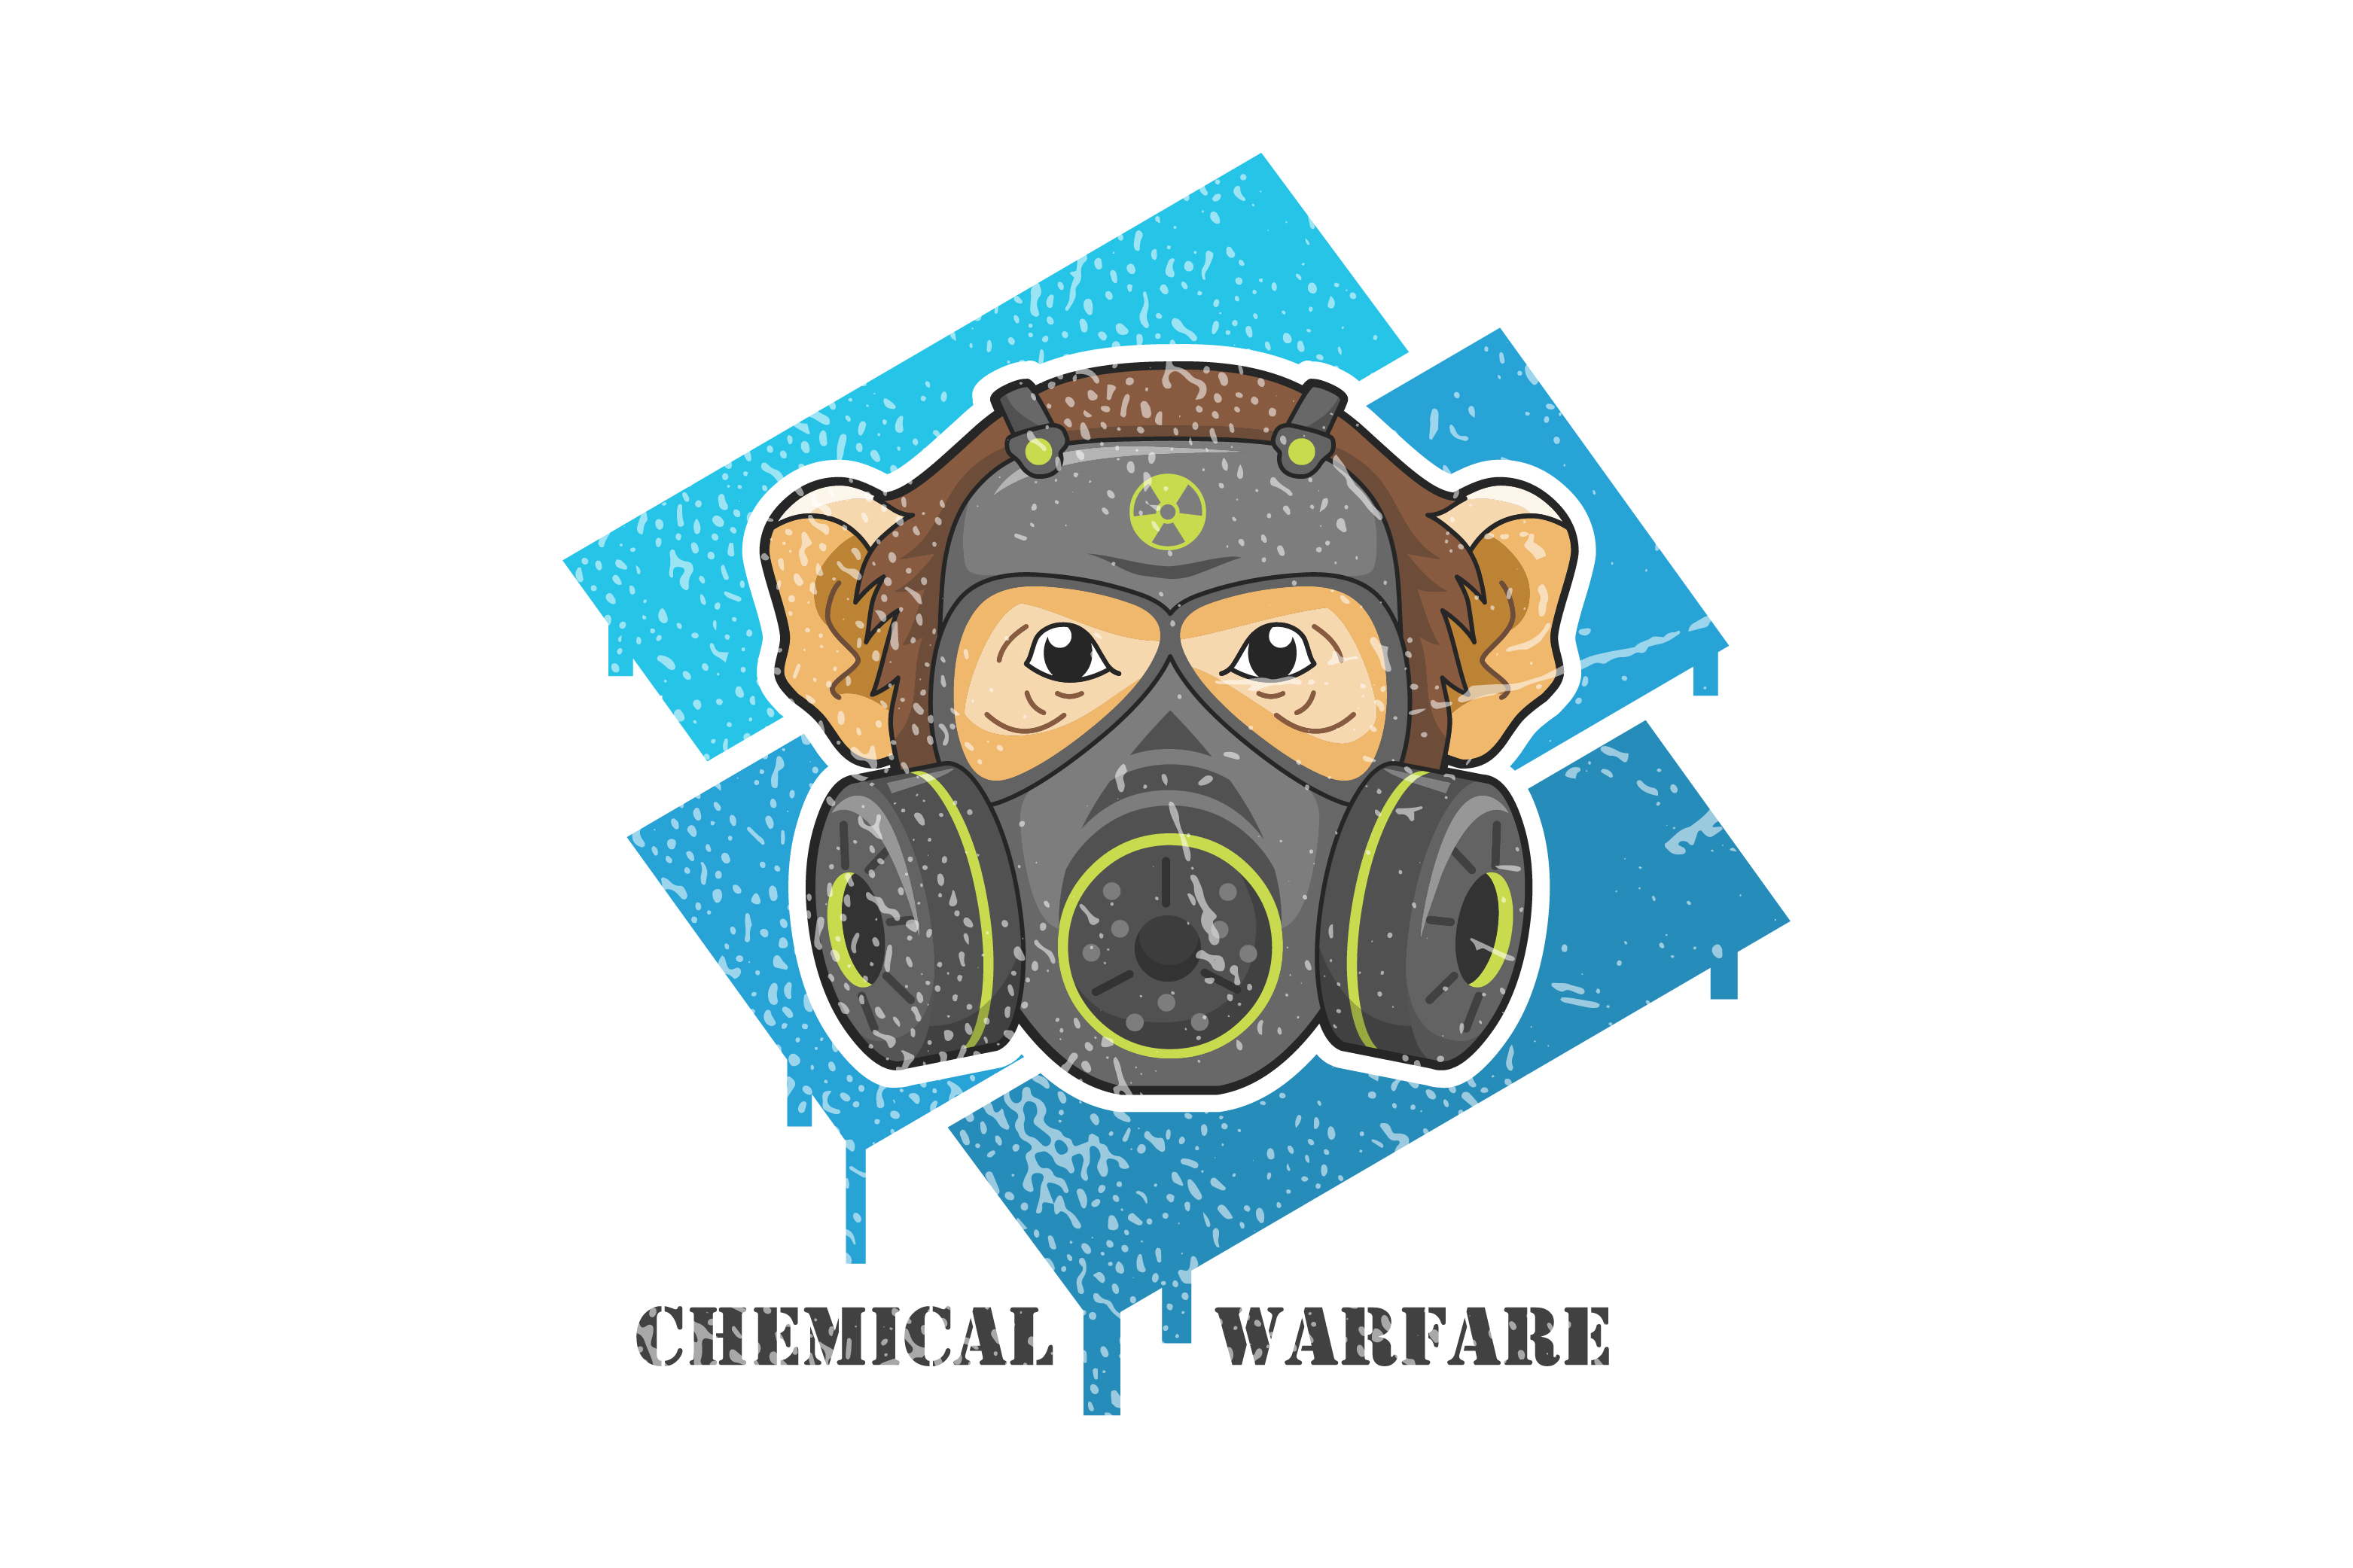 Download Free Chemical Warfare A Monkey And Mask Graphic By Contr4 Creative Fabrica for Cricut Explore, Silhouette and other cutting machines.